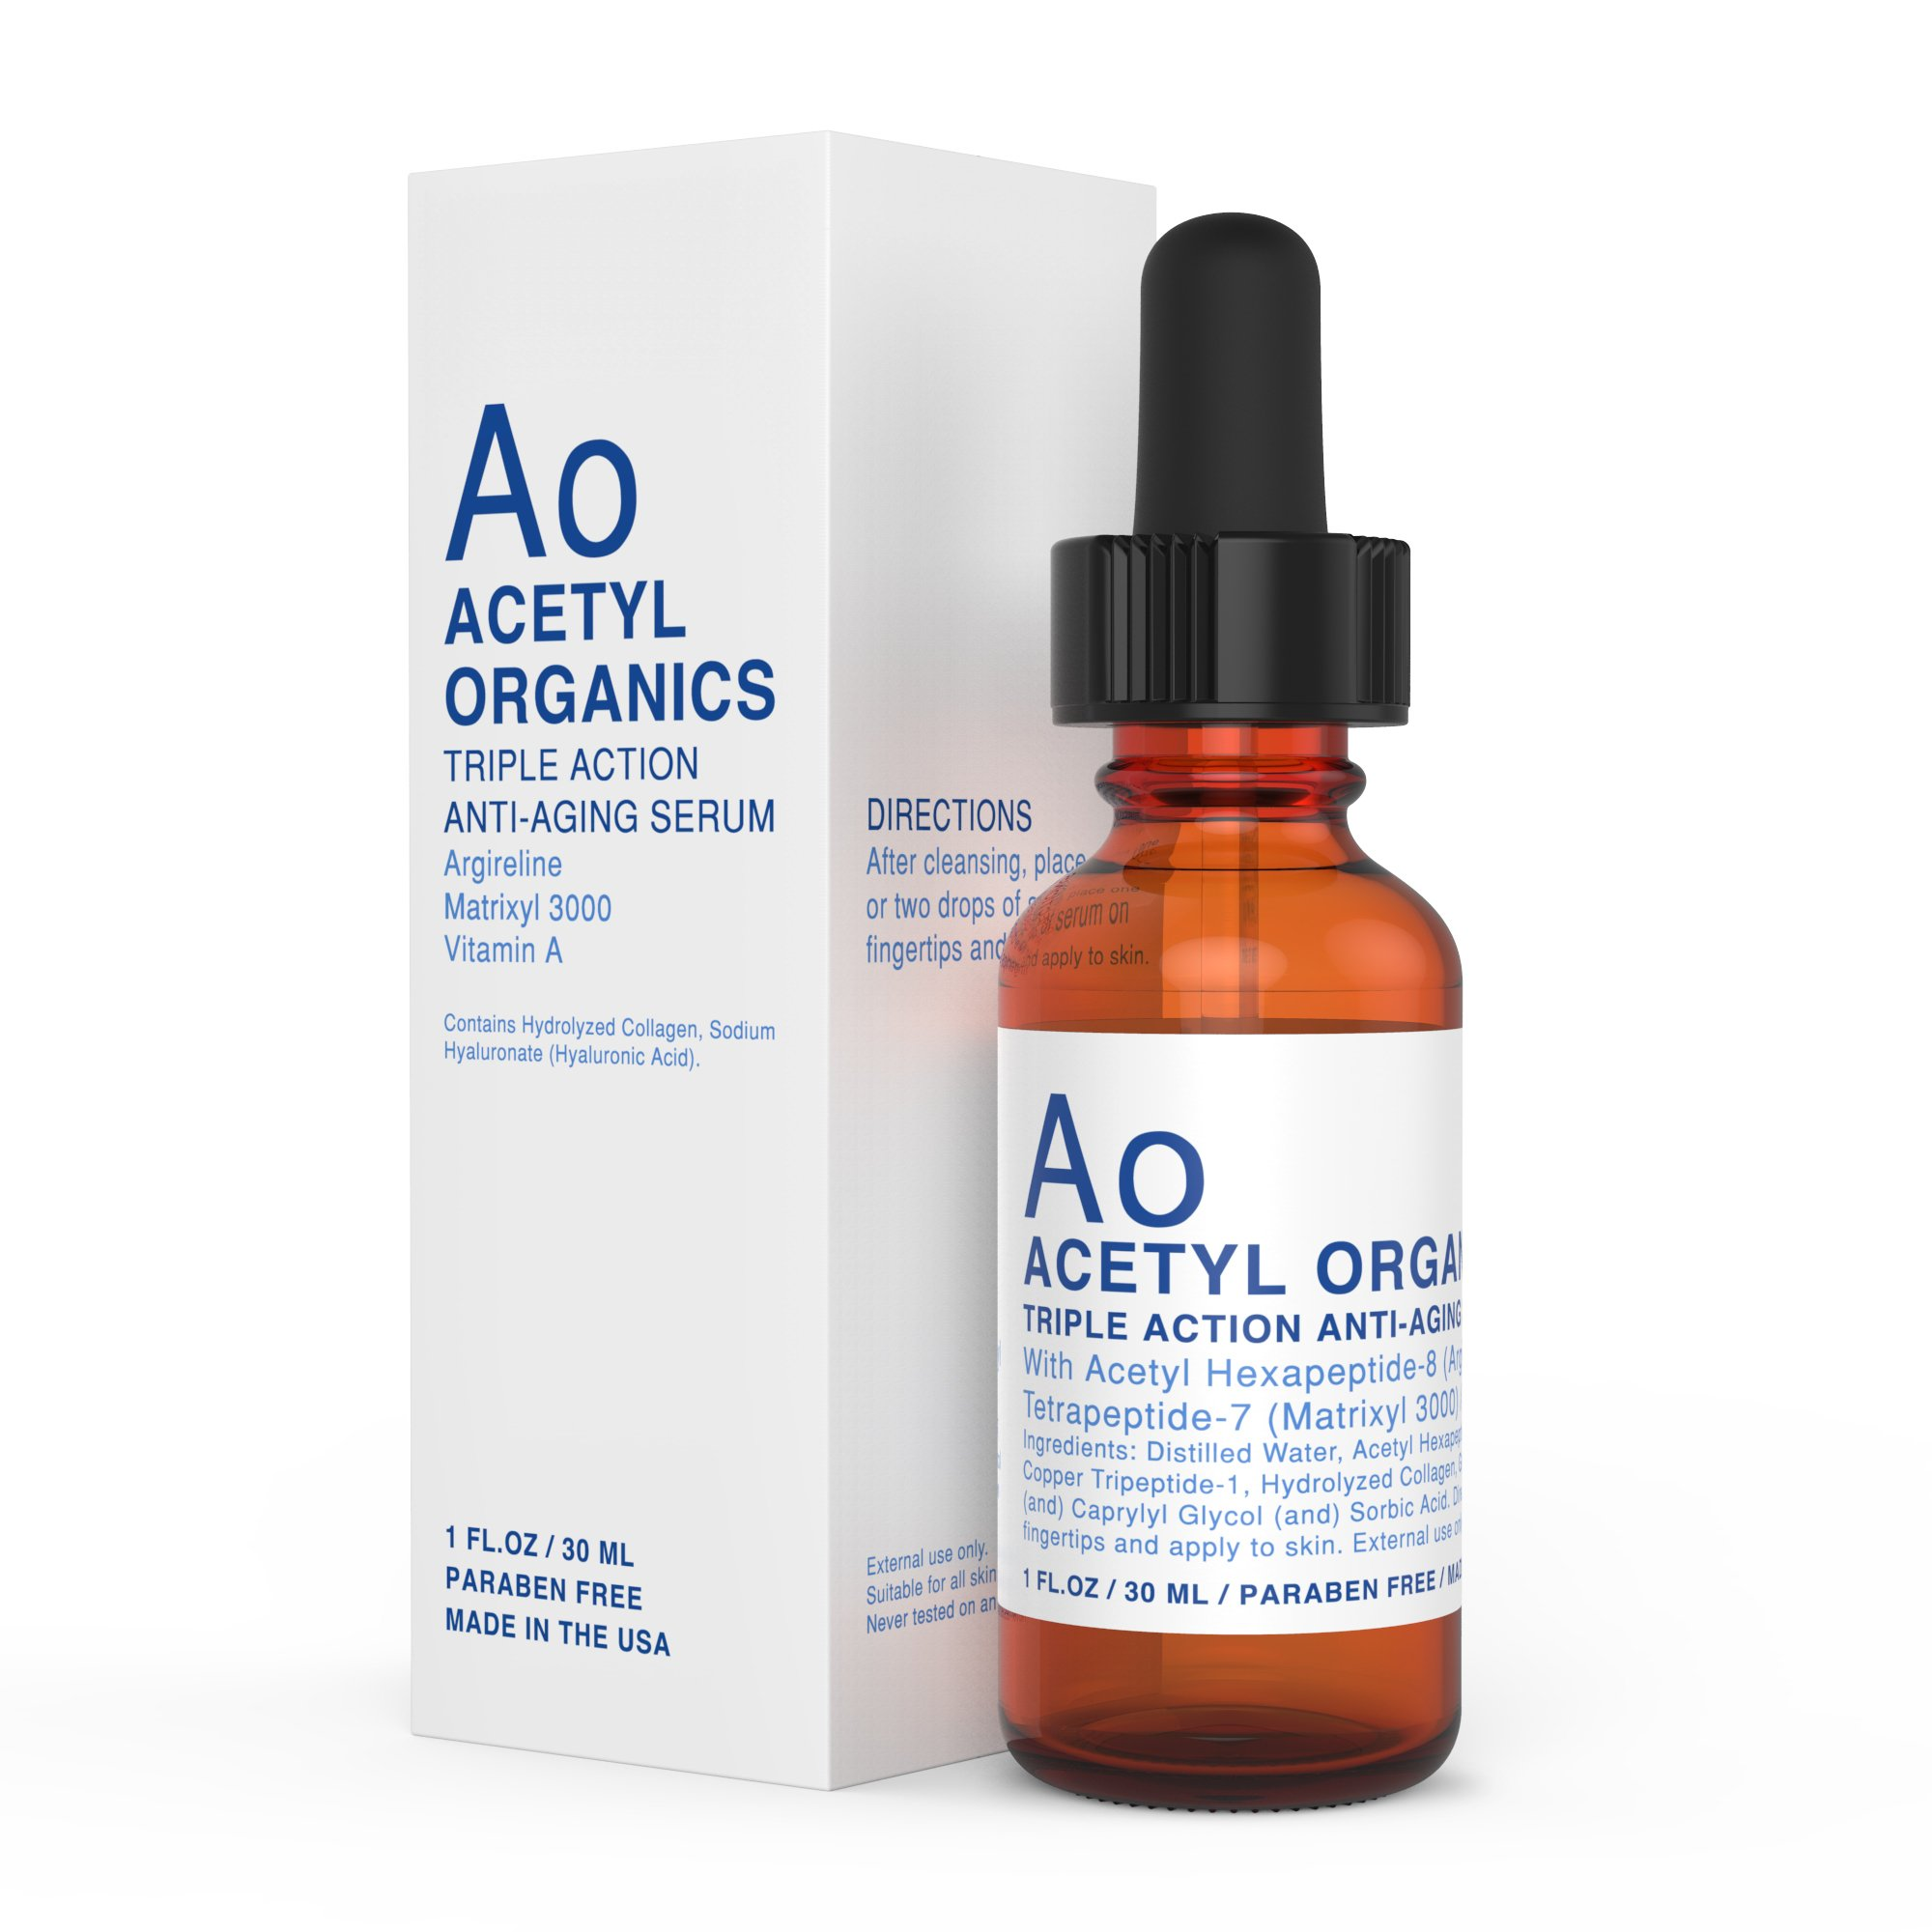 PREMIUM Anti-aging Serum FOR OVER 40S, Argireline (20%), Matrixyl 3000 (20%), Retinyl Acetate (Vitamin A). Best Argireline Serum/Cream For Eyes, Wrinkles. Hyaluronic Acid. 100% Risk Free Offer.